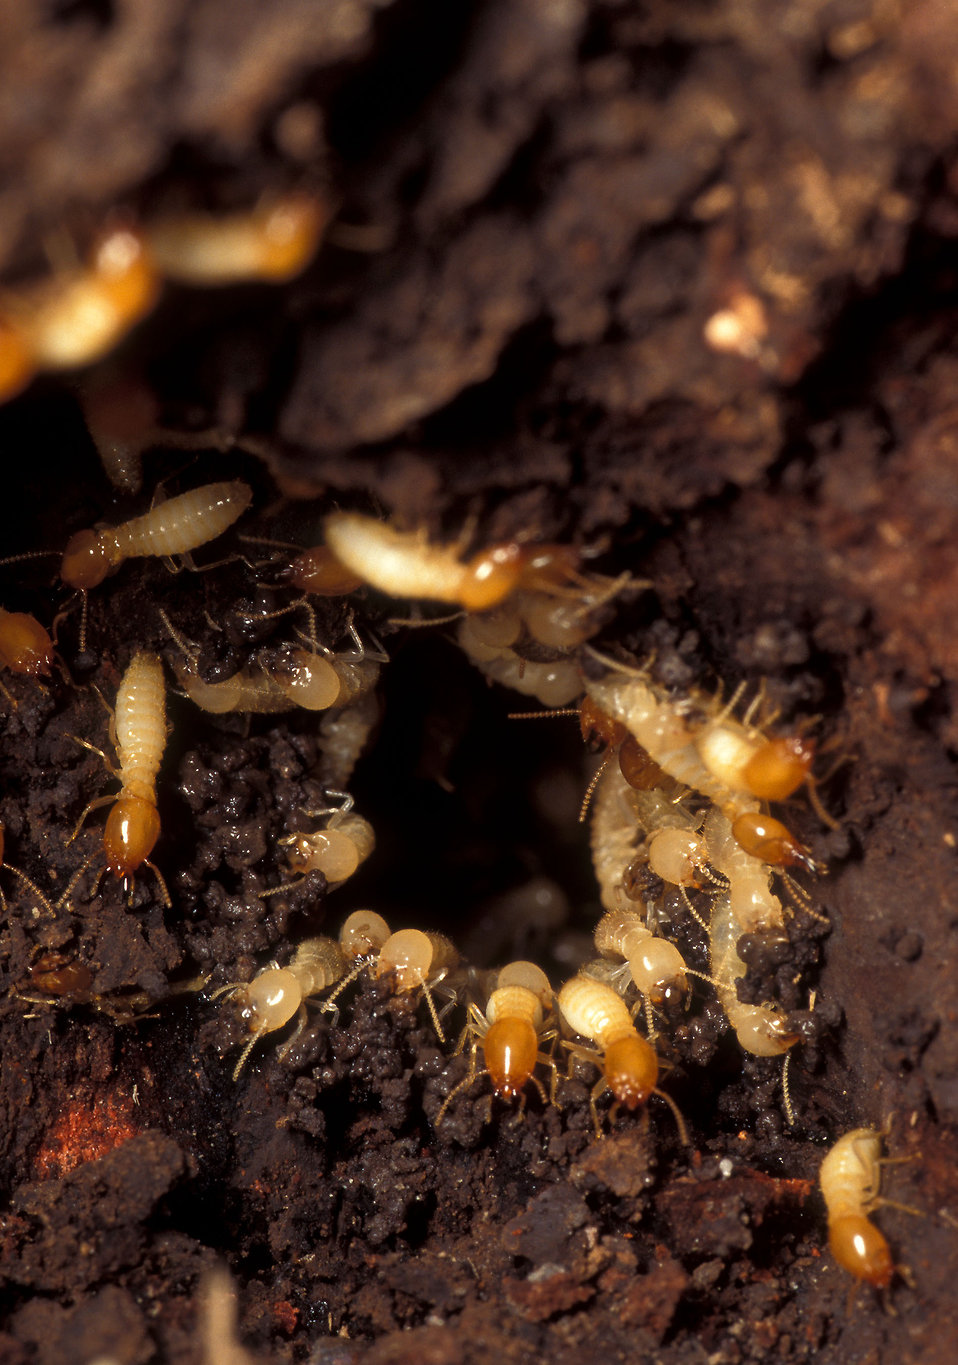 termites free stock photo formosan subterranean termites in a nest 10852. Black Bedroom Furniture Sets. Home Design Ideas